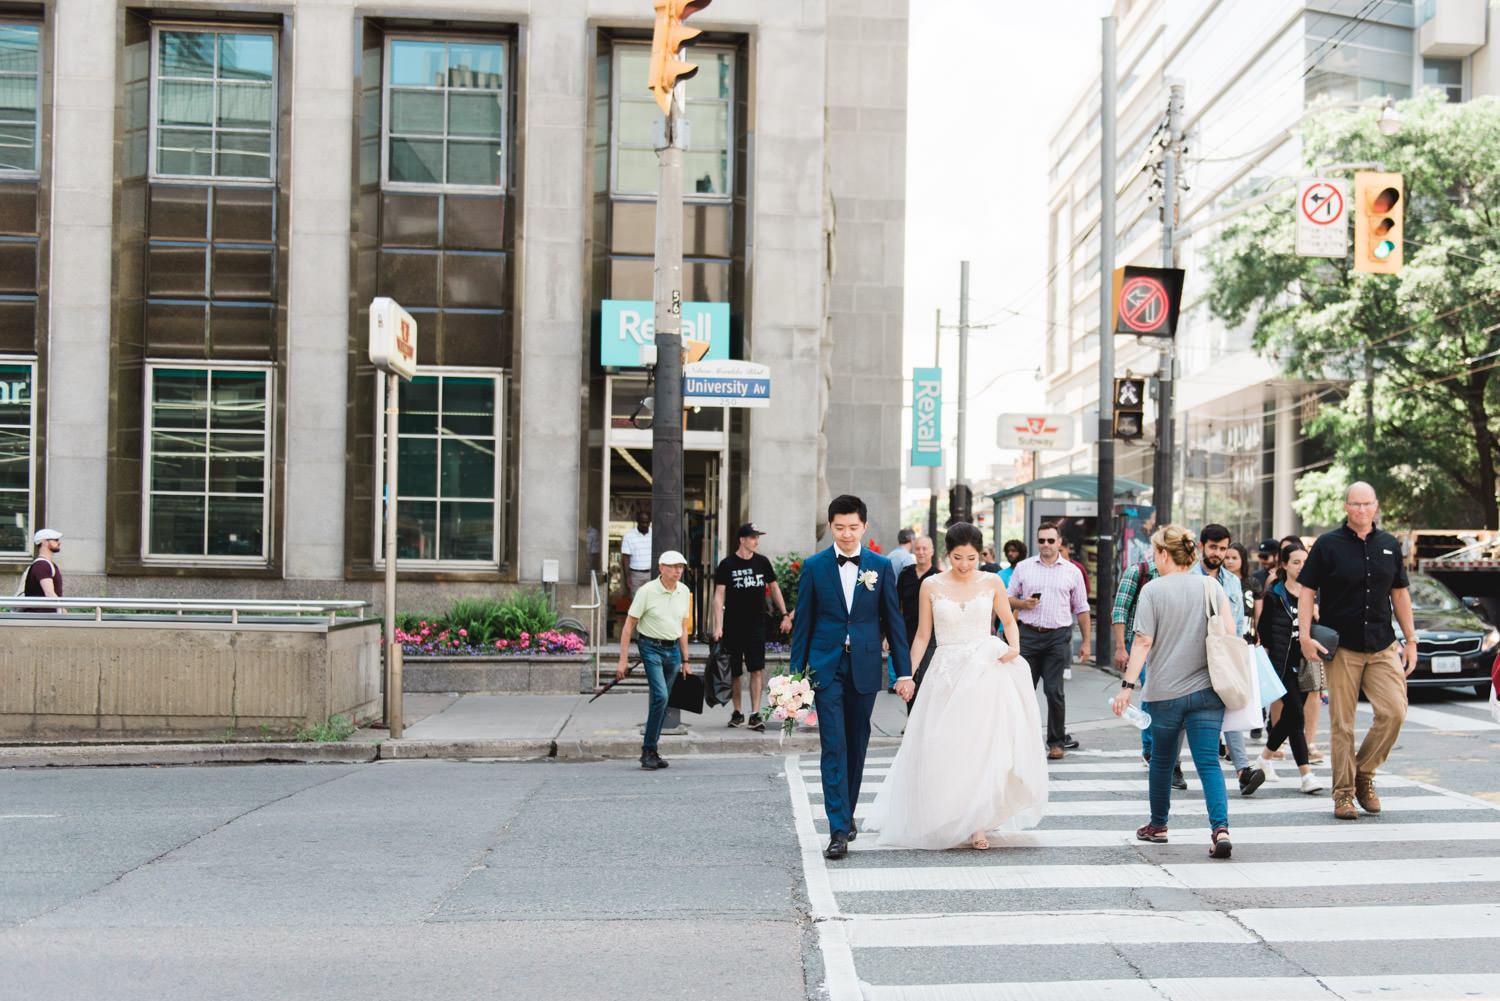 Bride and groom walking in the streets of downtown Toronto